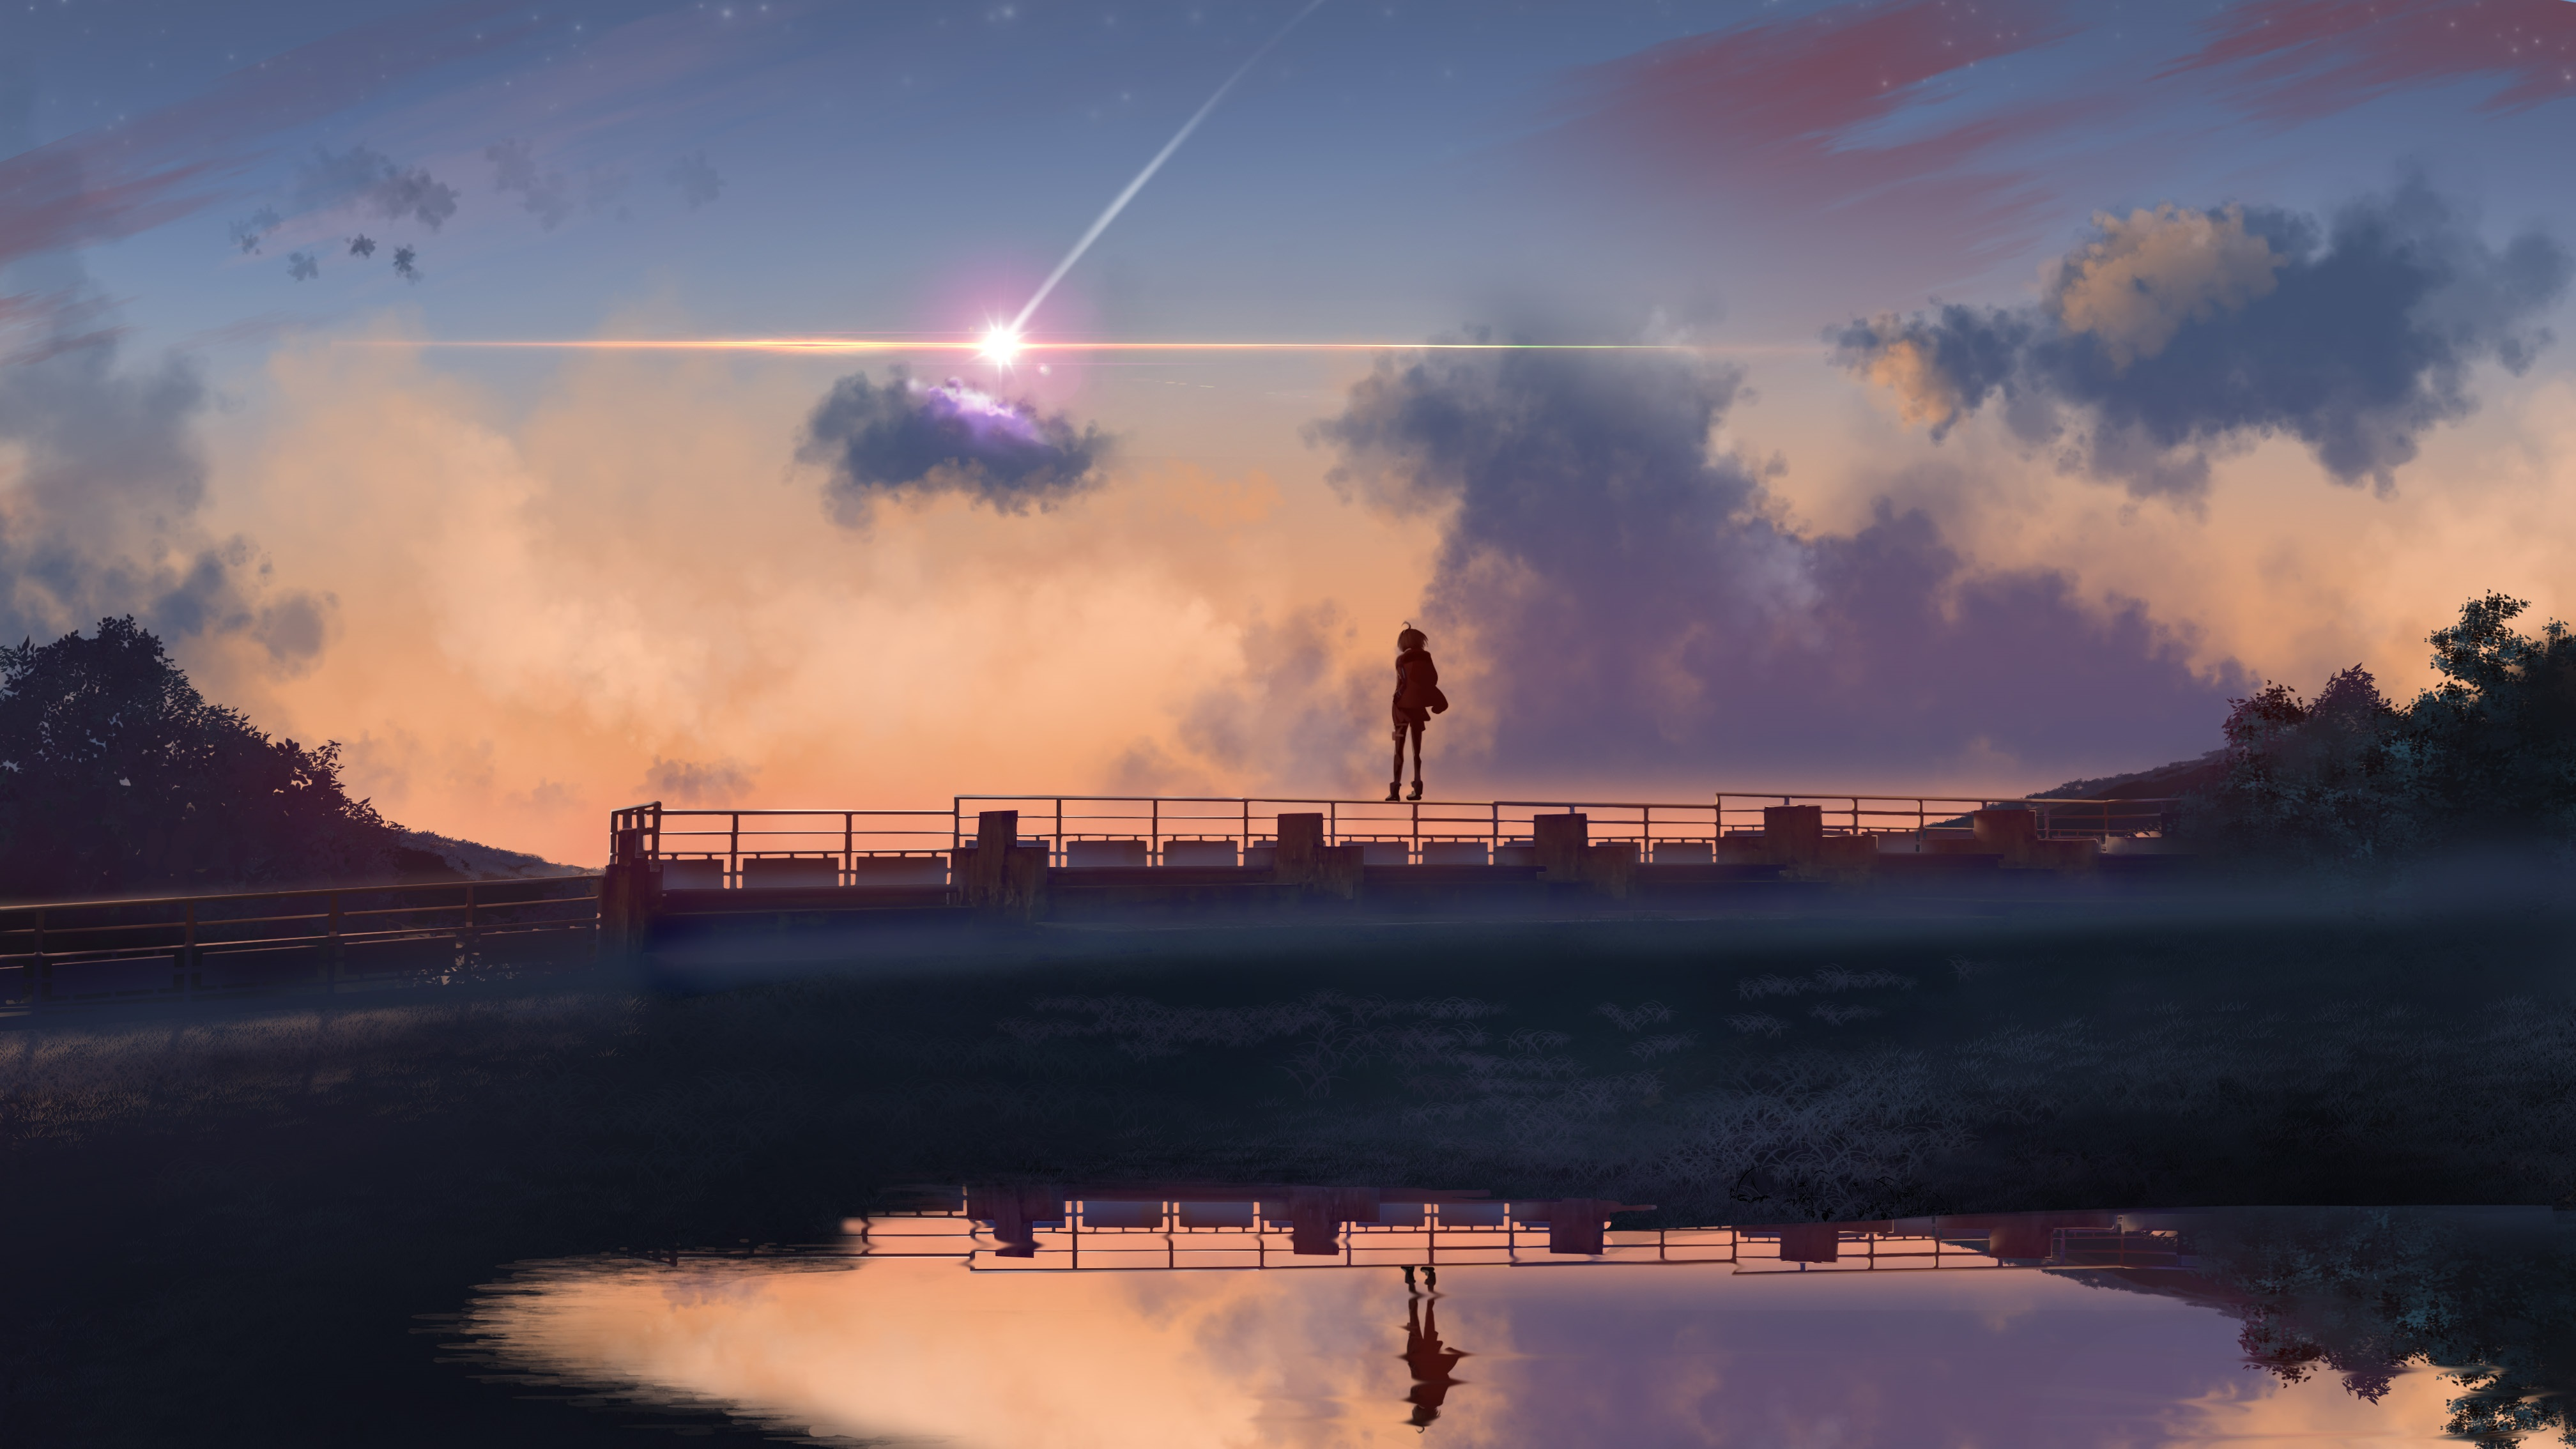 anime boy standing on bridge 1578254170 - Anime Boy Standing On Bridge -